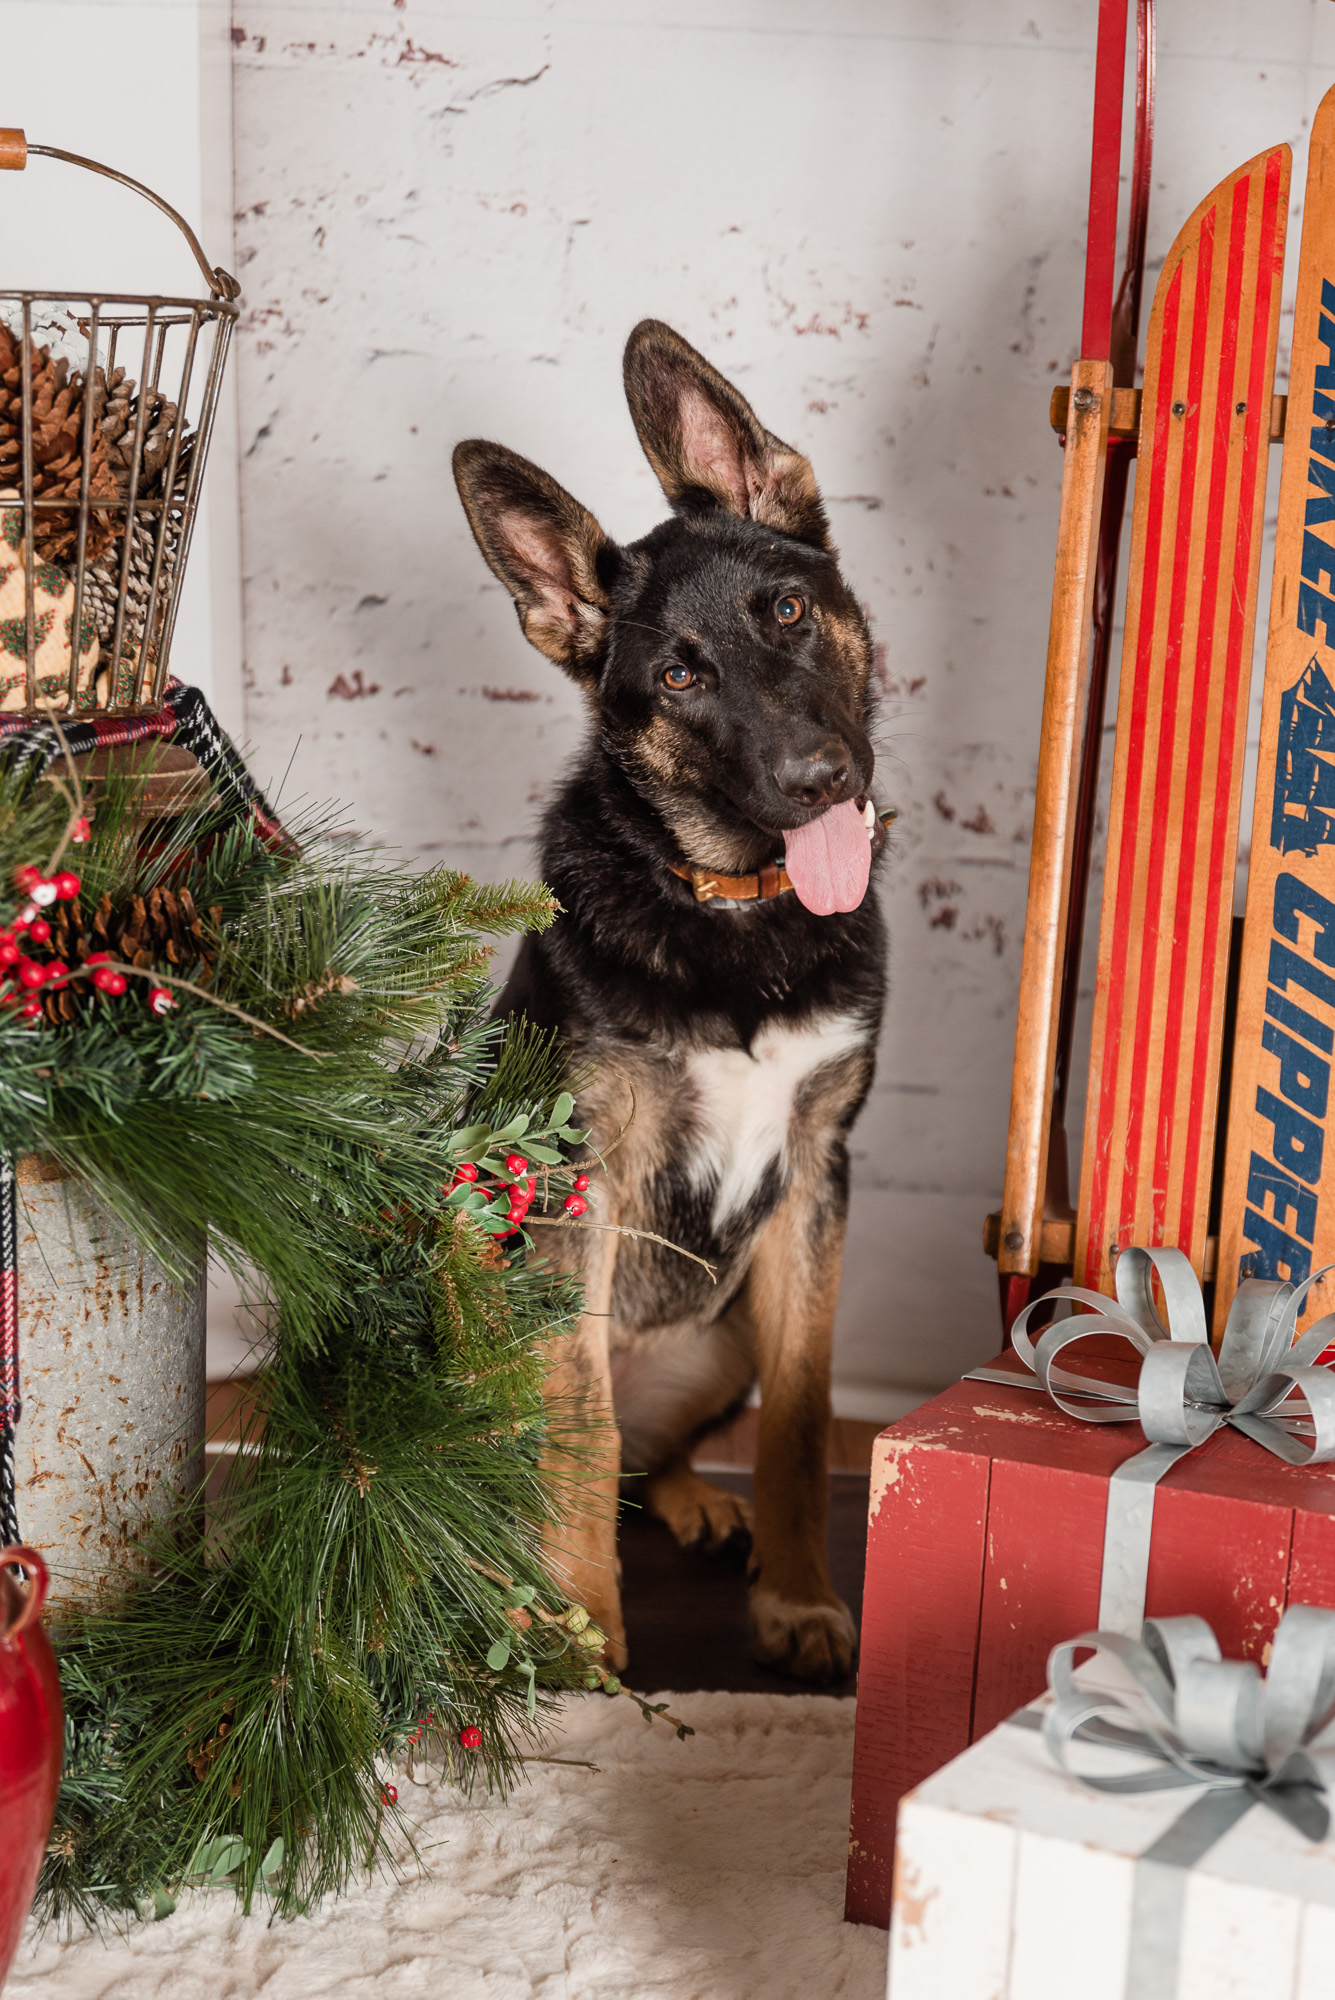 Athens dog photographer gives back with annual Holiday Hounds mini sessions to raise money for rescue animals.